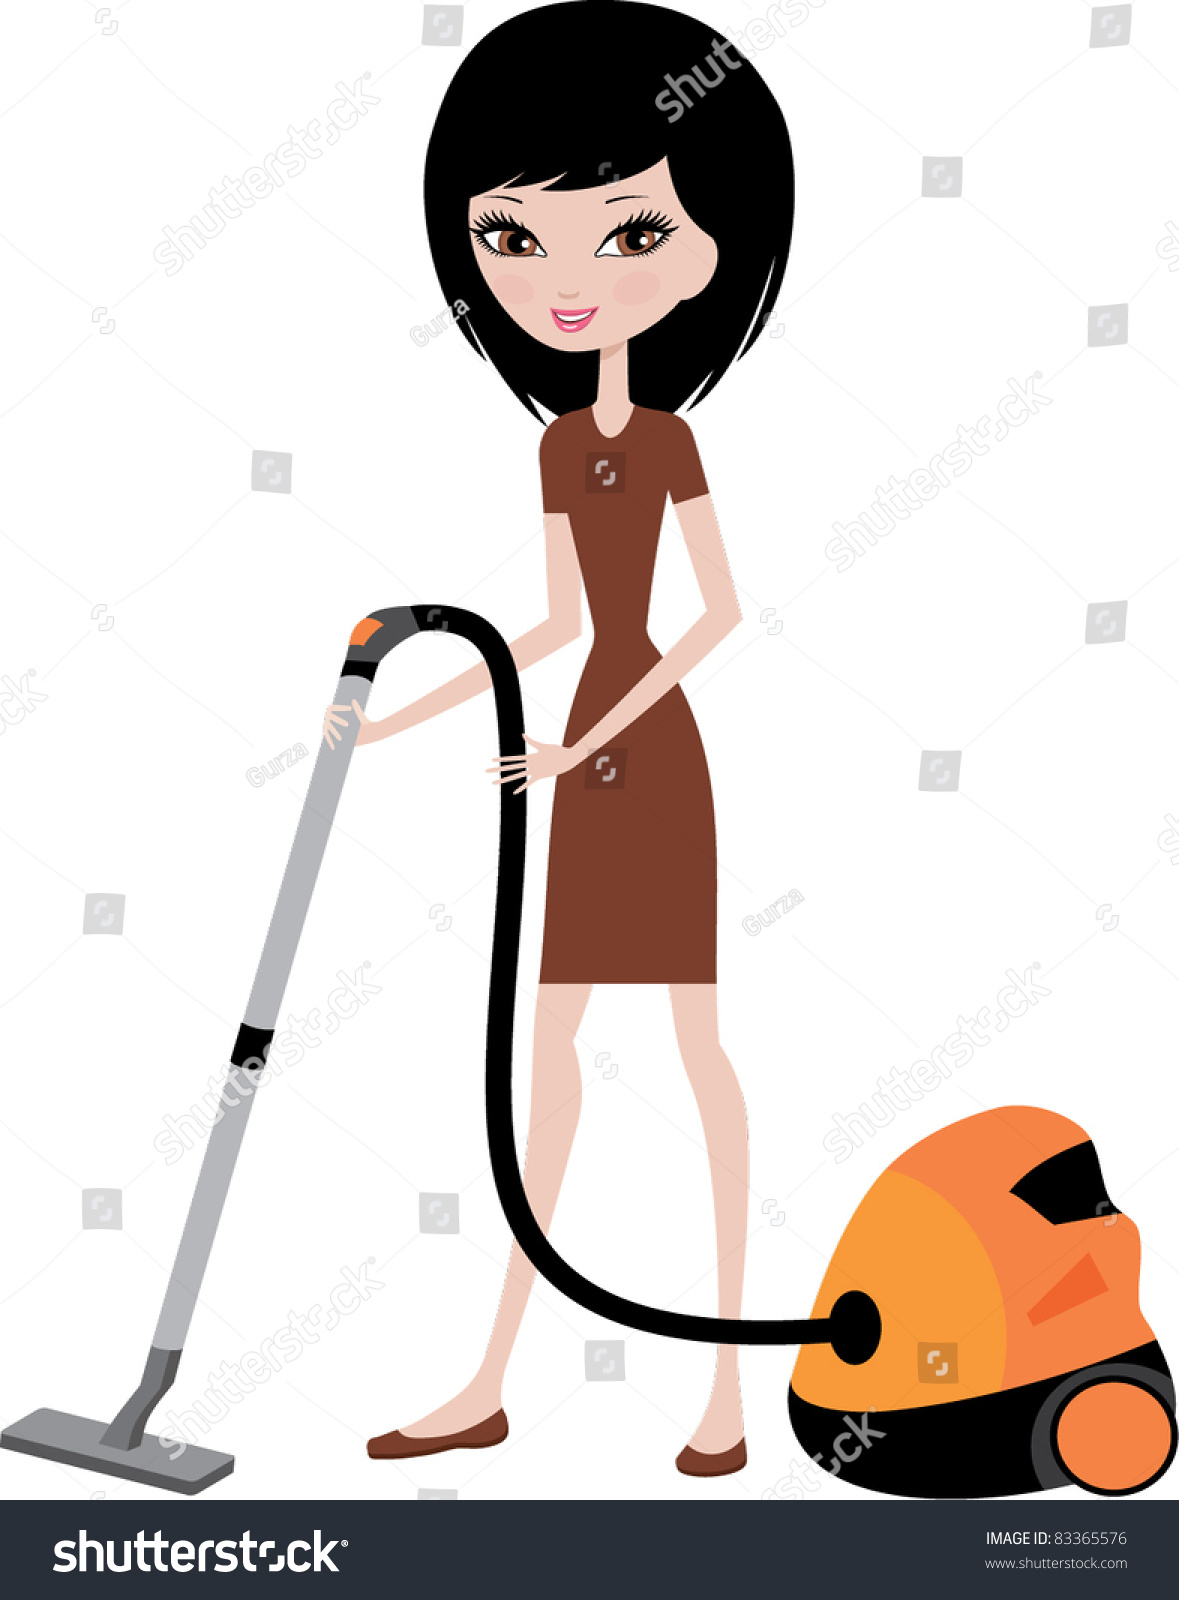 Vacuum cleaner clipart vacuum cleaner clip art - Pretty Girl With Vacuum Cleaner Vector Color Full No Gradient